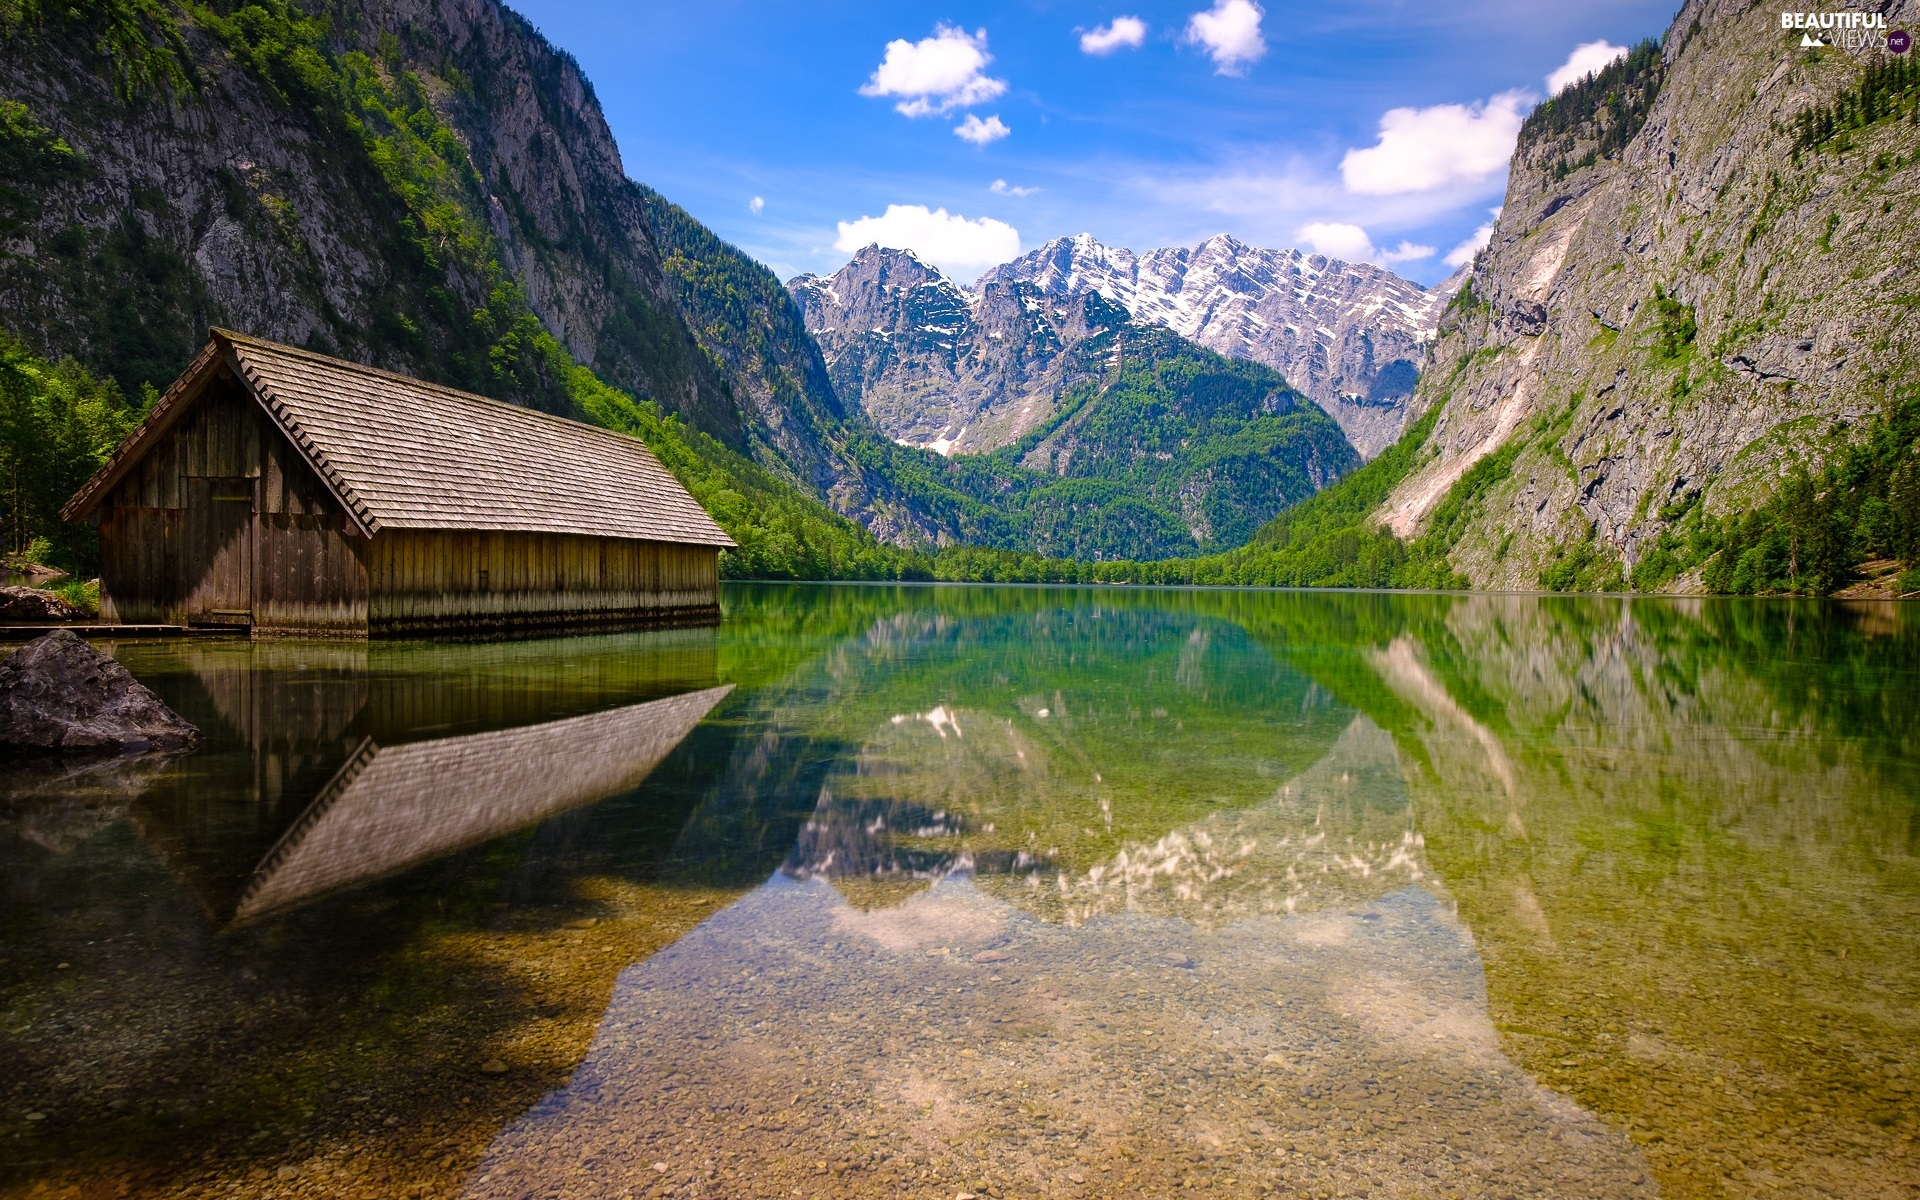 Home, cote, Germany, Alps Mountains, Bavaria, wooden, Obersee Lake, Berchtesgaden National Park